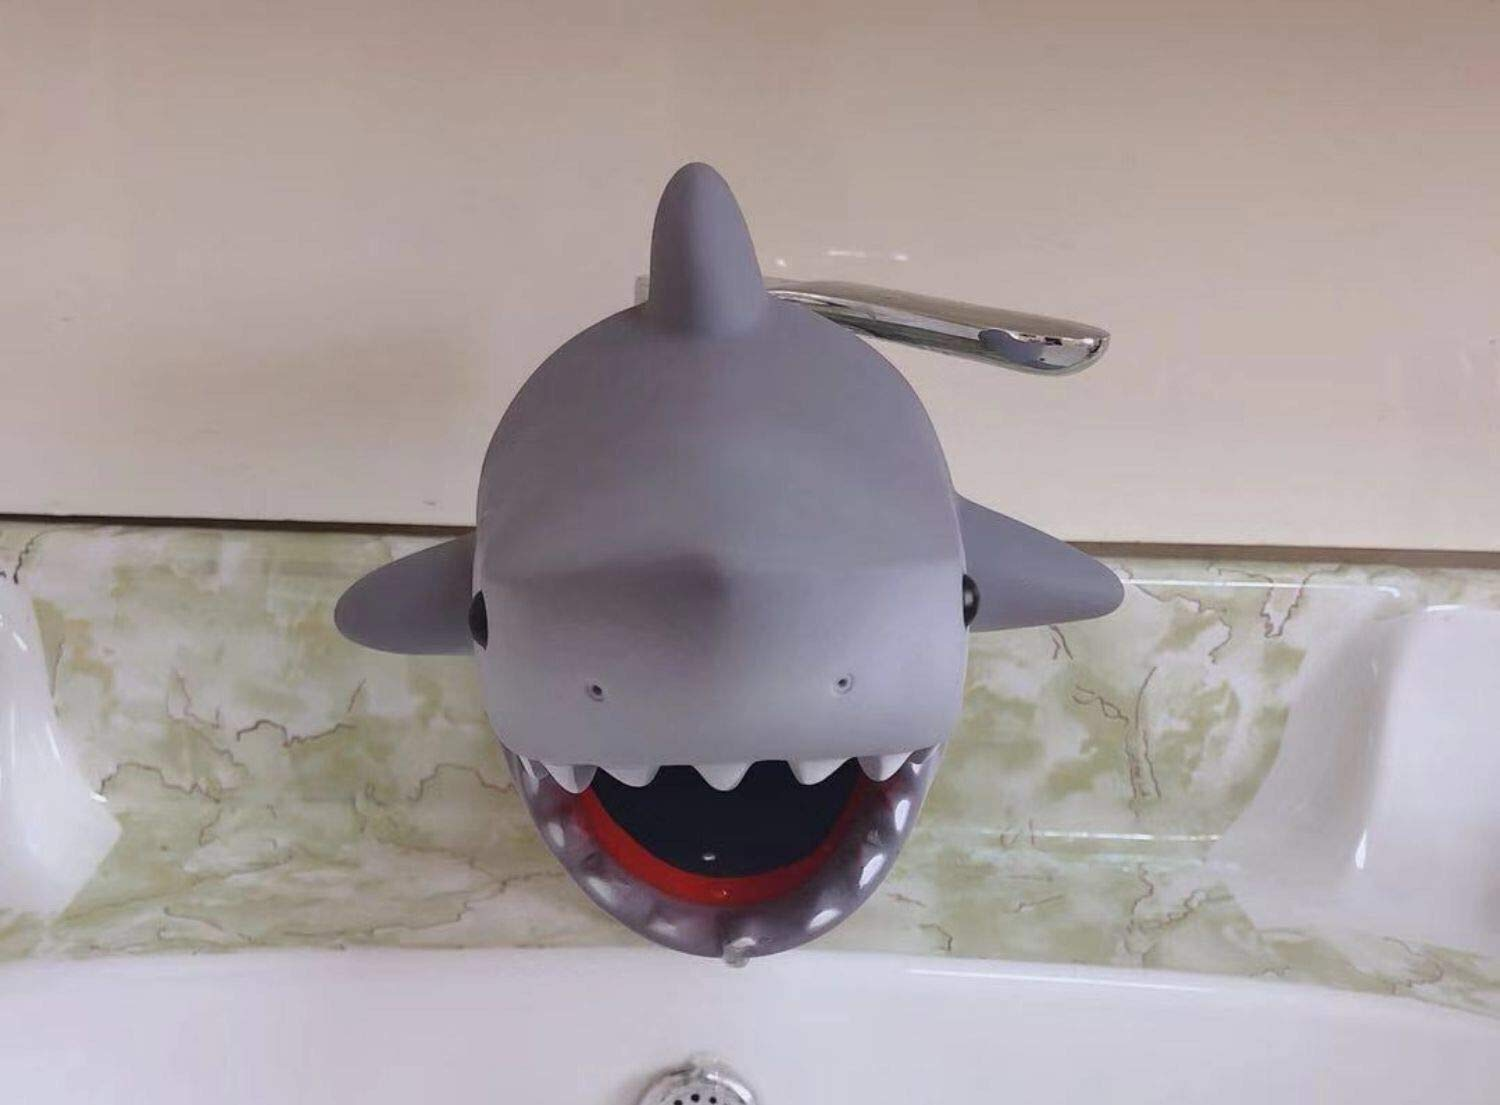 Jian Jing Bathroom Sink Spout Cover - Grey Shark Bathroom Faucet Cover for Kid - Faucet Extender Protector for Baby - Silicone Soft Spout Cover Baby - Child Bathroom Cute Accessories